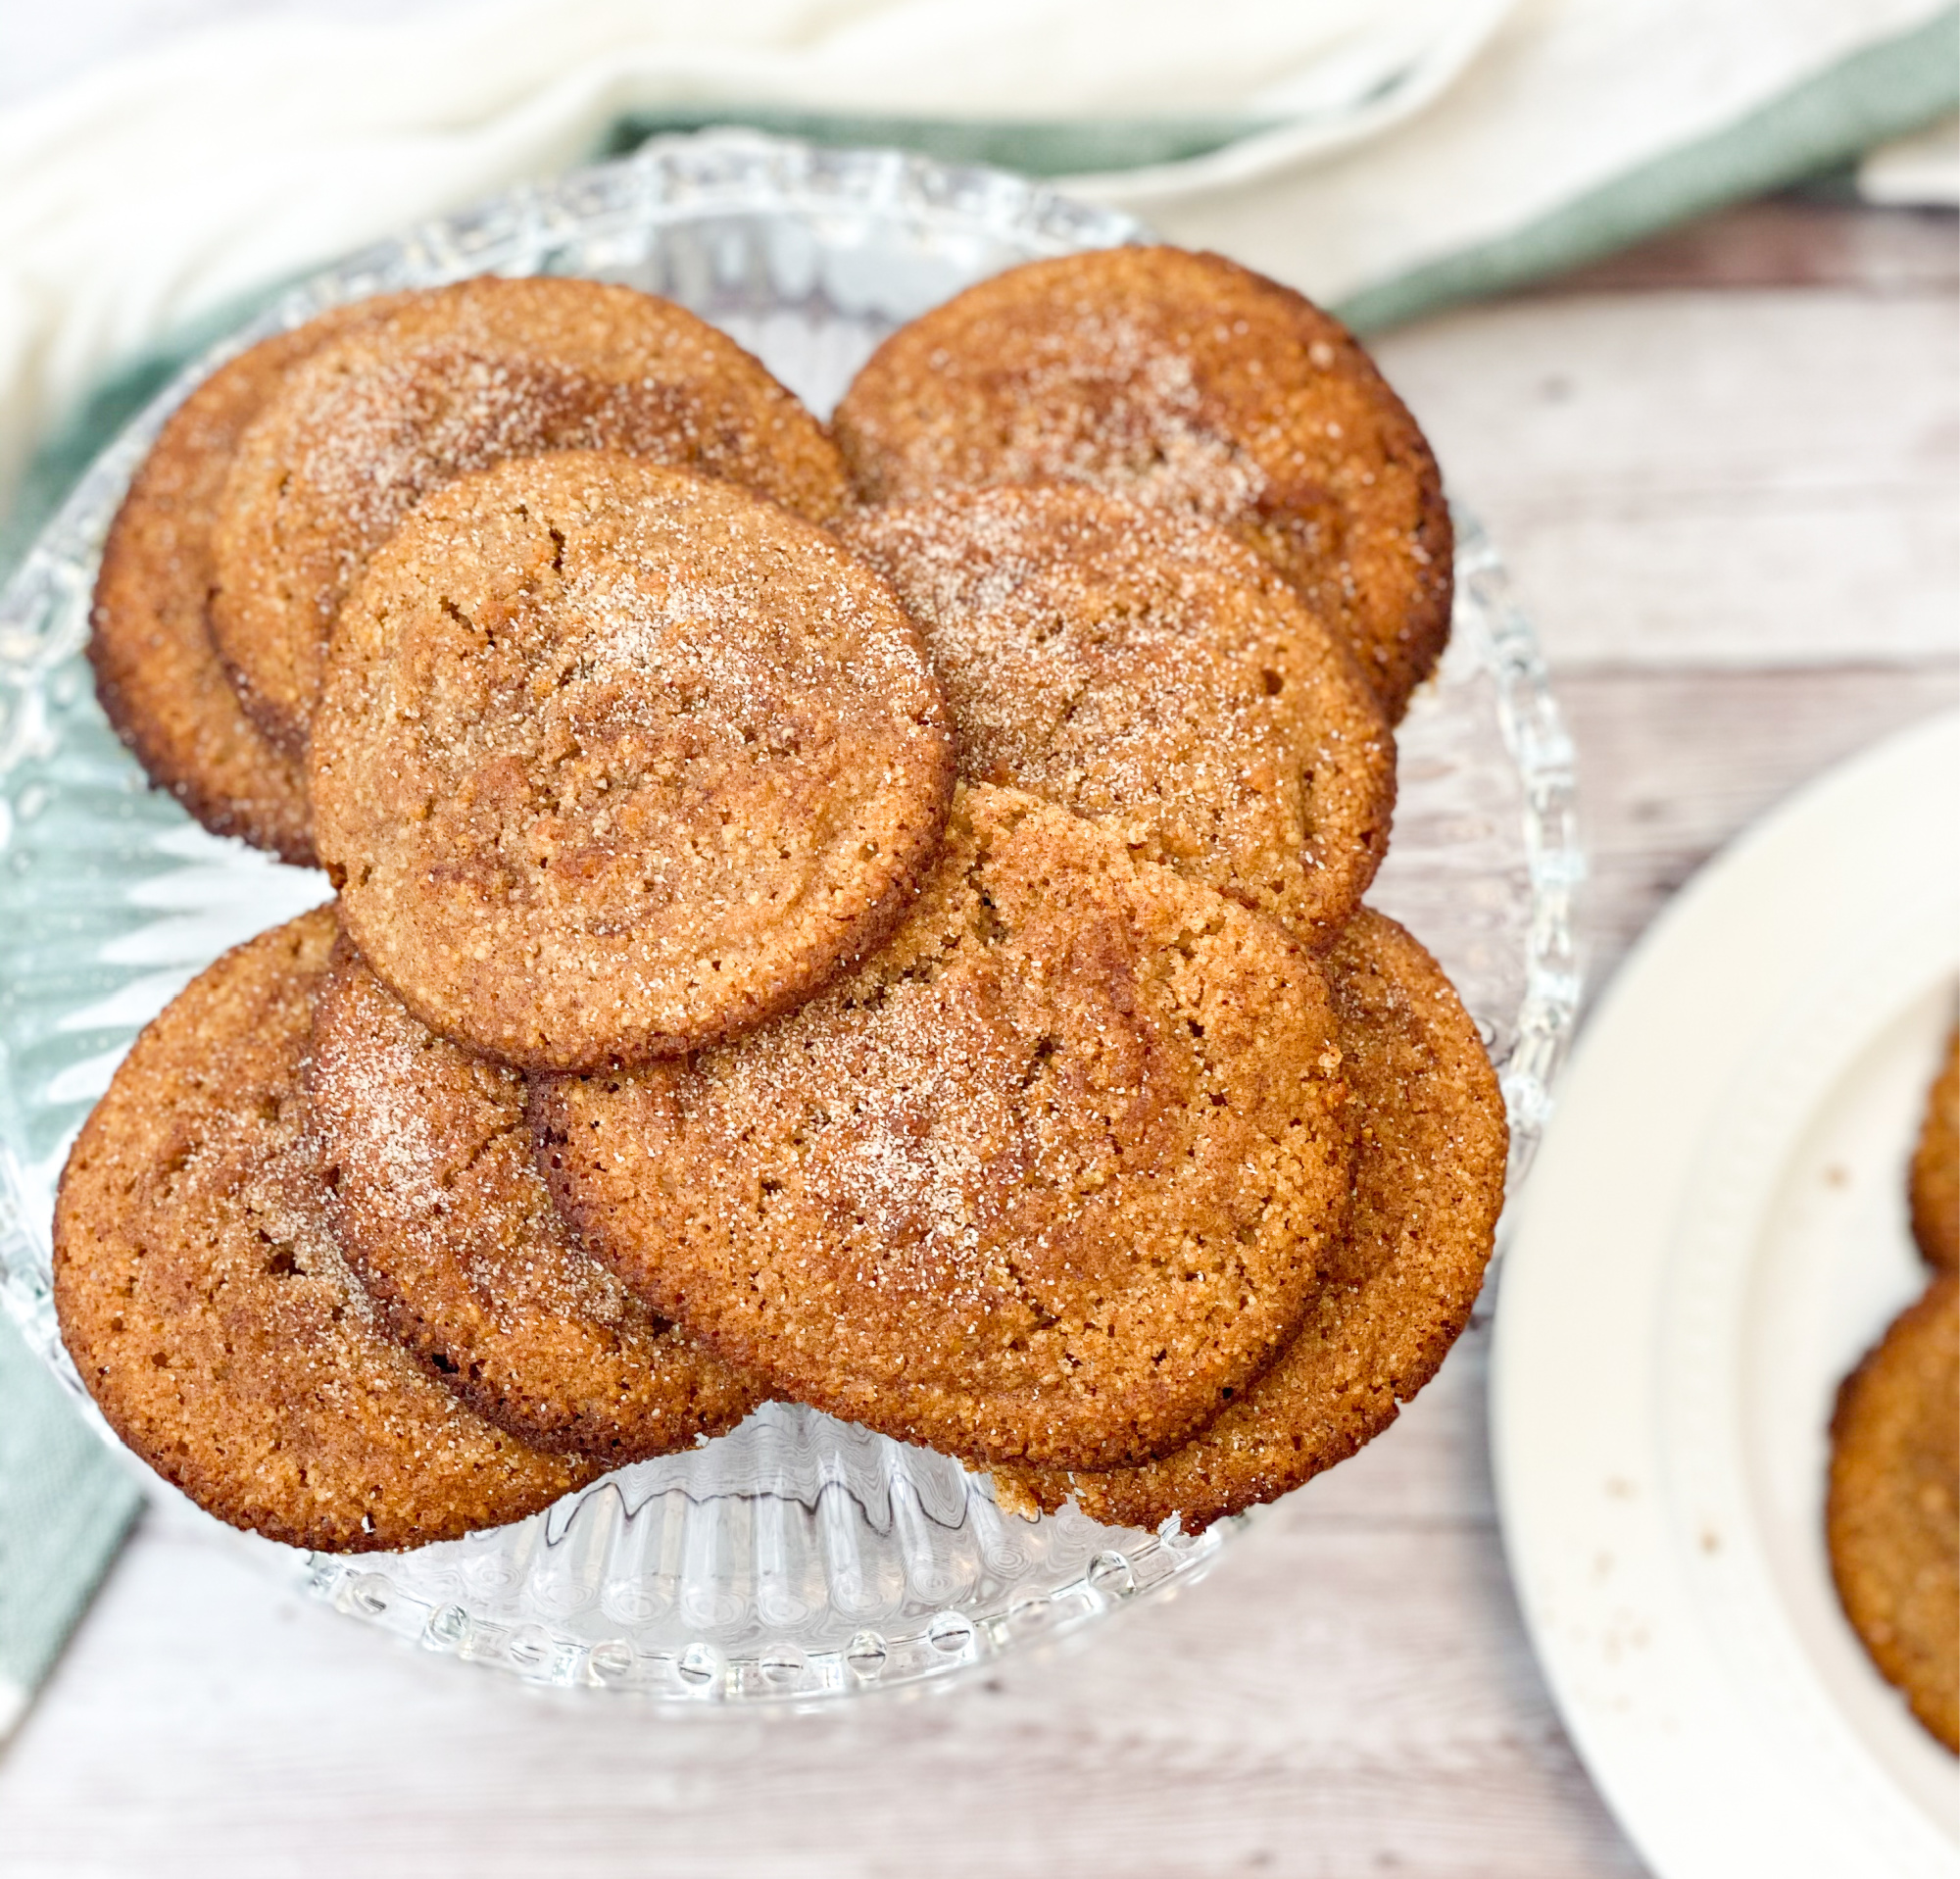 keto snickerdoodle cookies on a clear plate